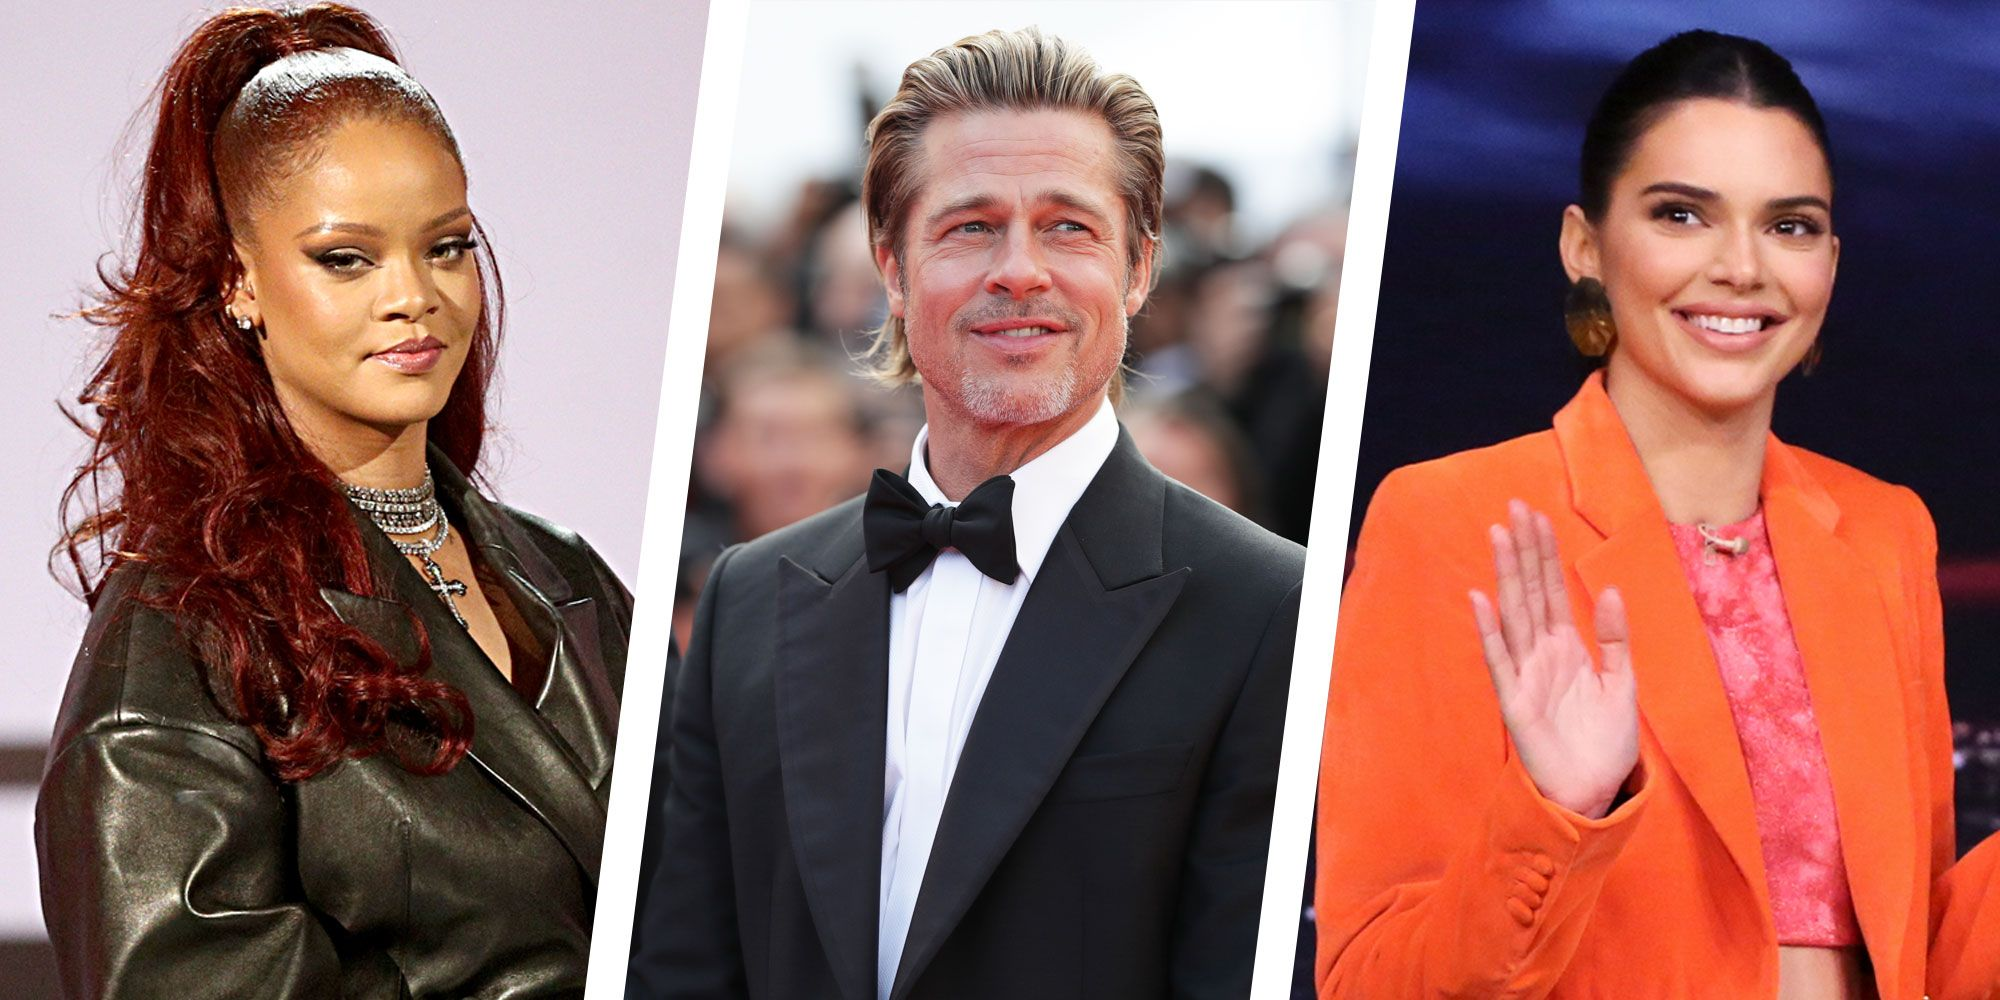 Kendall Jenner Wants Brad Pitt and Rihanna To Be a Couple